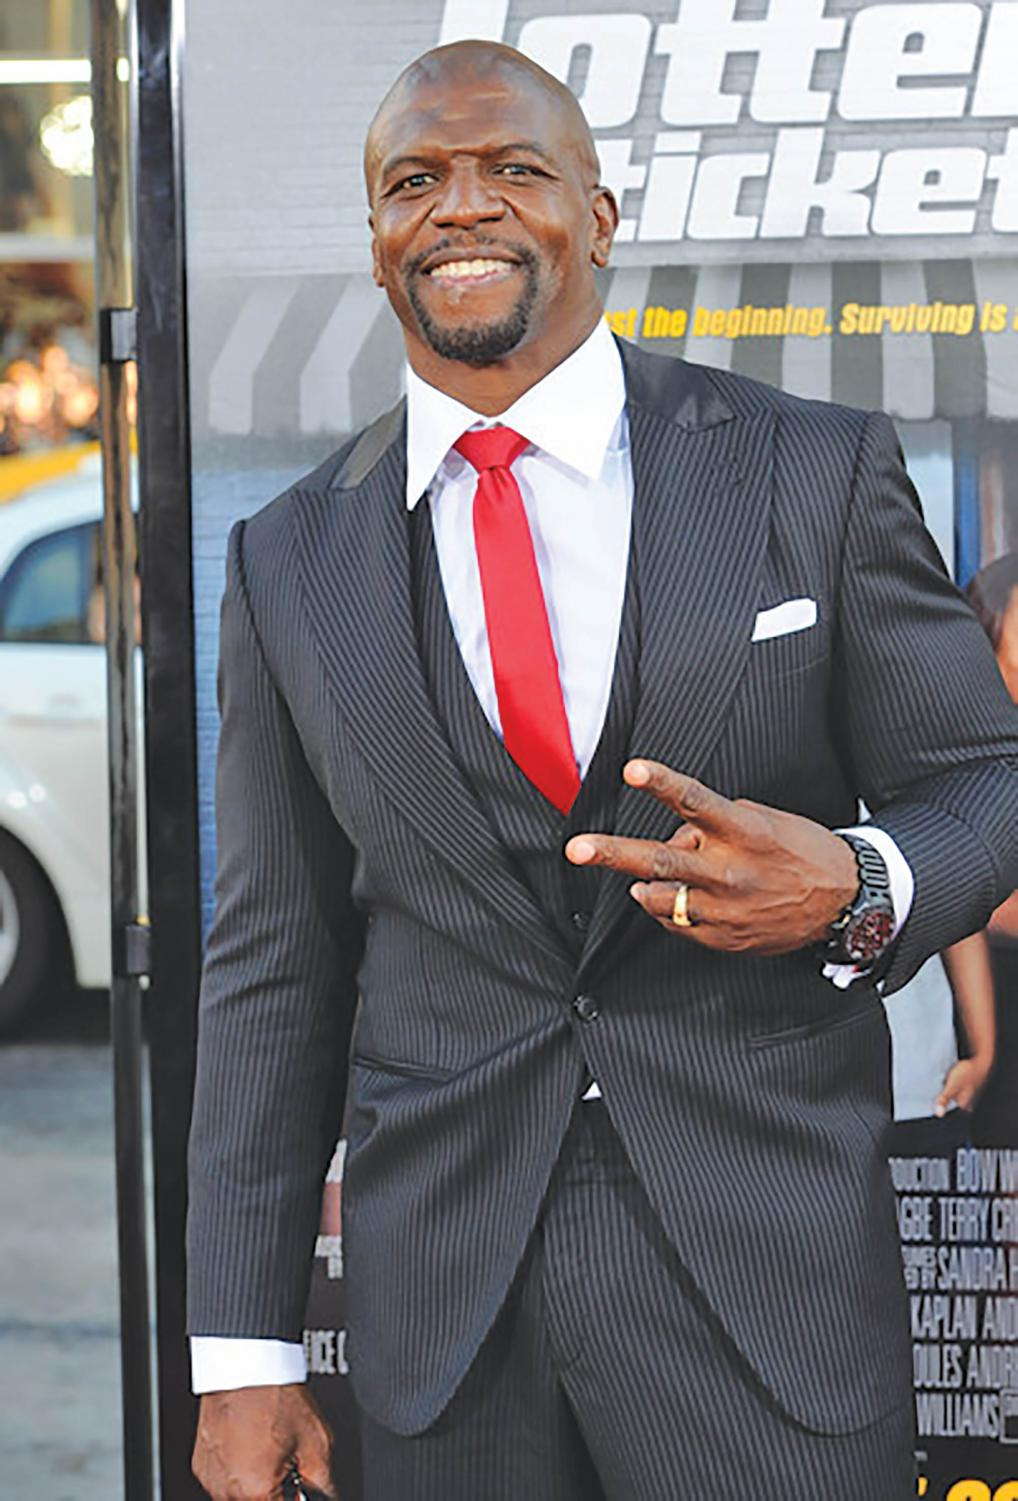 Crews apologized on Twitter after having a conversation with cast member Stephanie Beatriz on March 5.